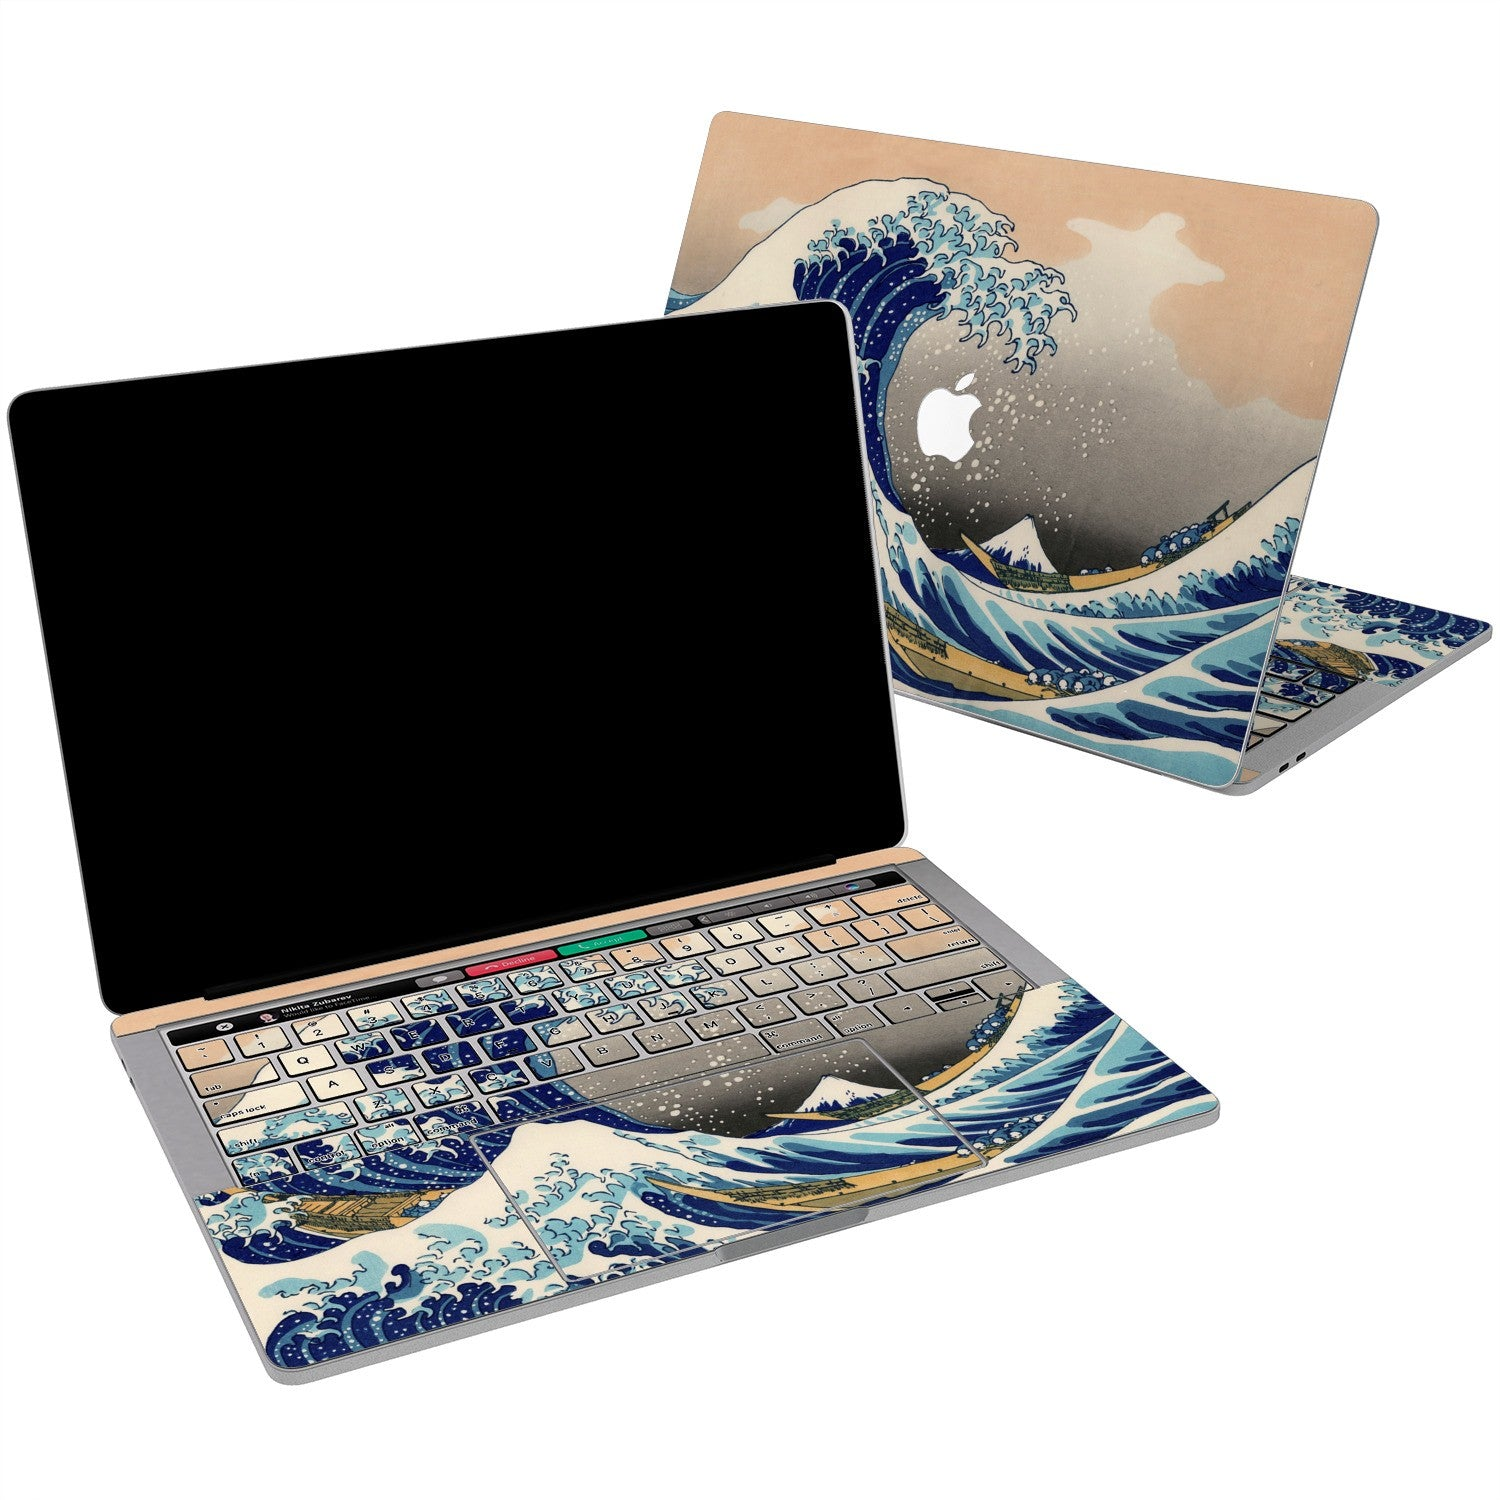 Lex Altern Vinyl MacBook Skin The Great Wave off Kanagawa for your Laptop Apple Macbook.